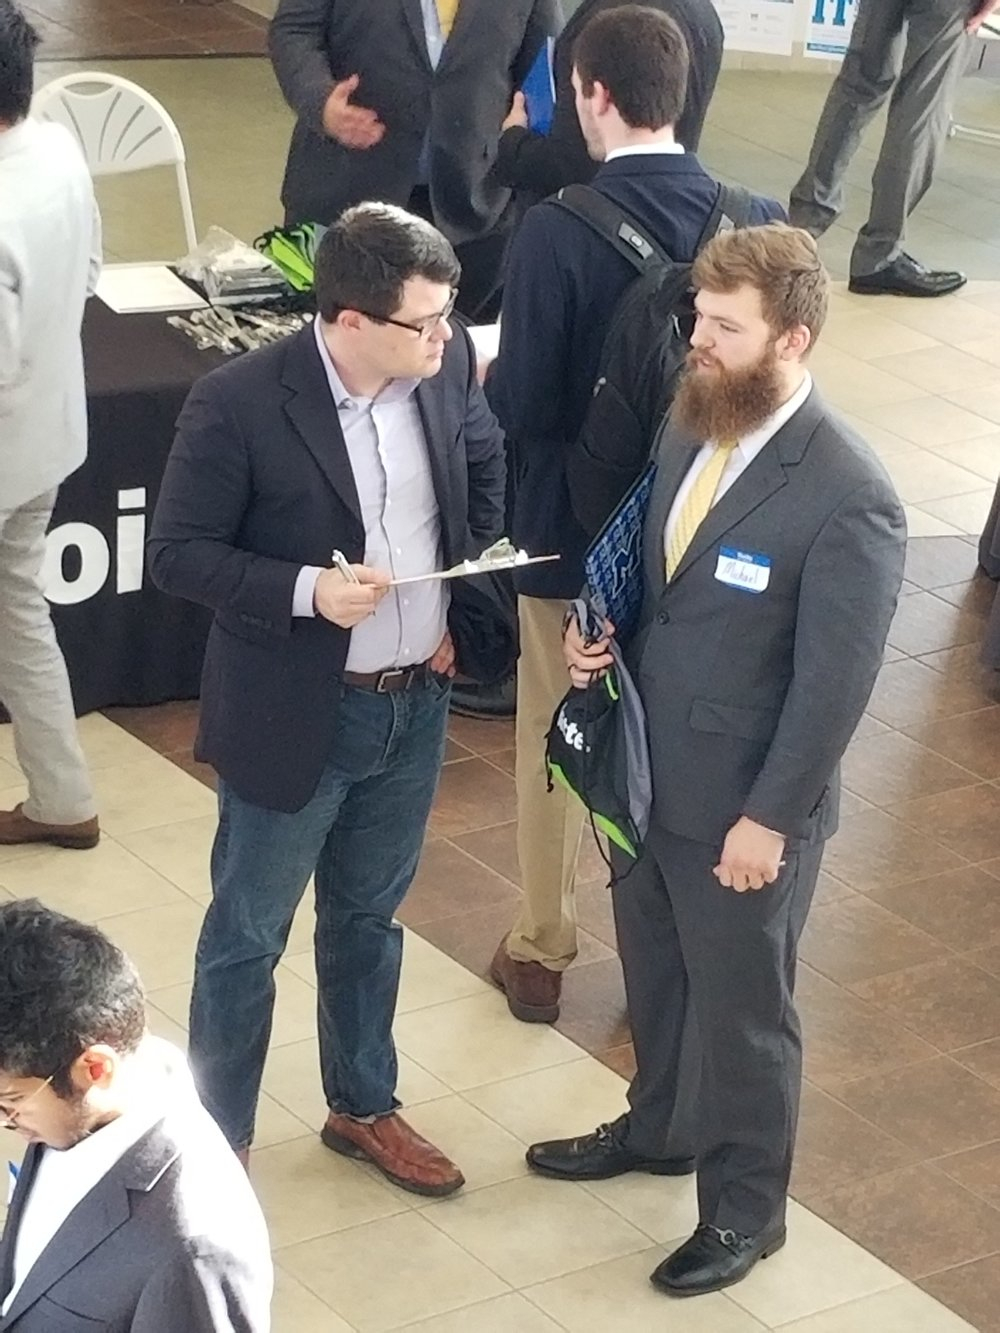 Michael Morrissey (MTSU student) talking to Decision Source about possible opportunities.